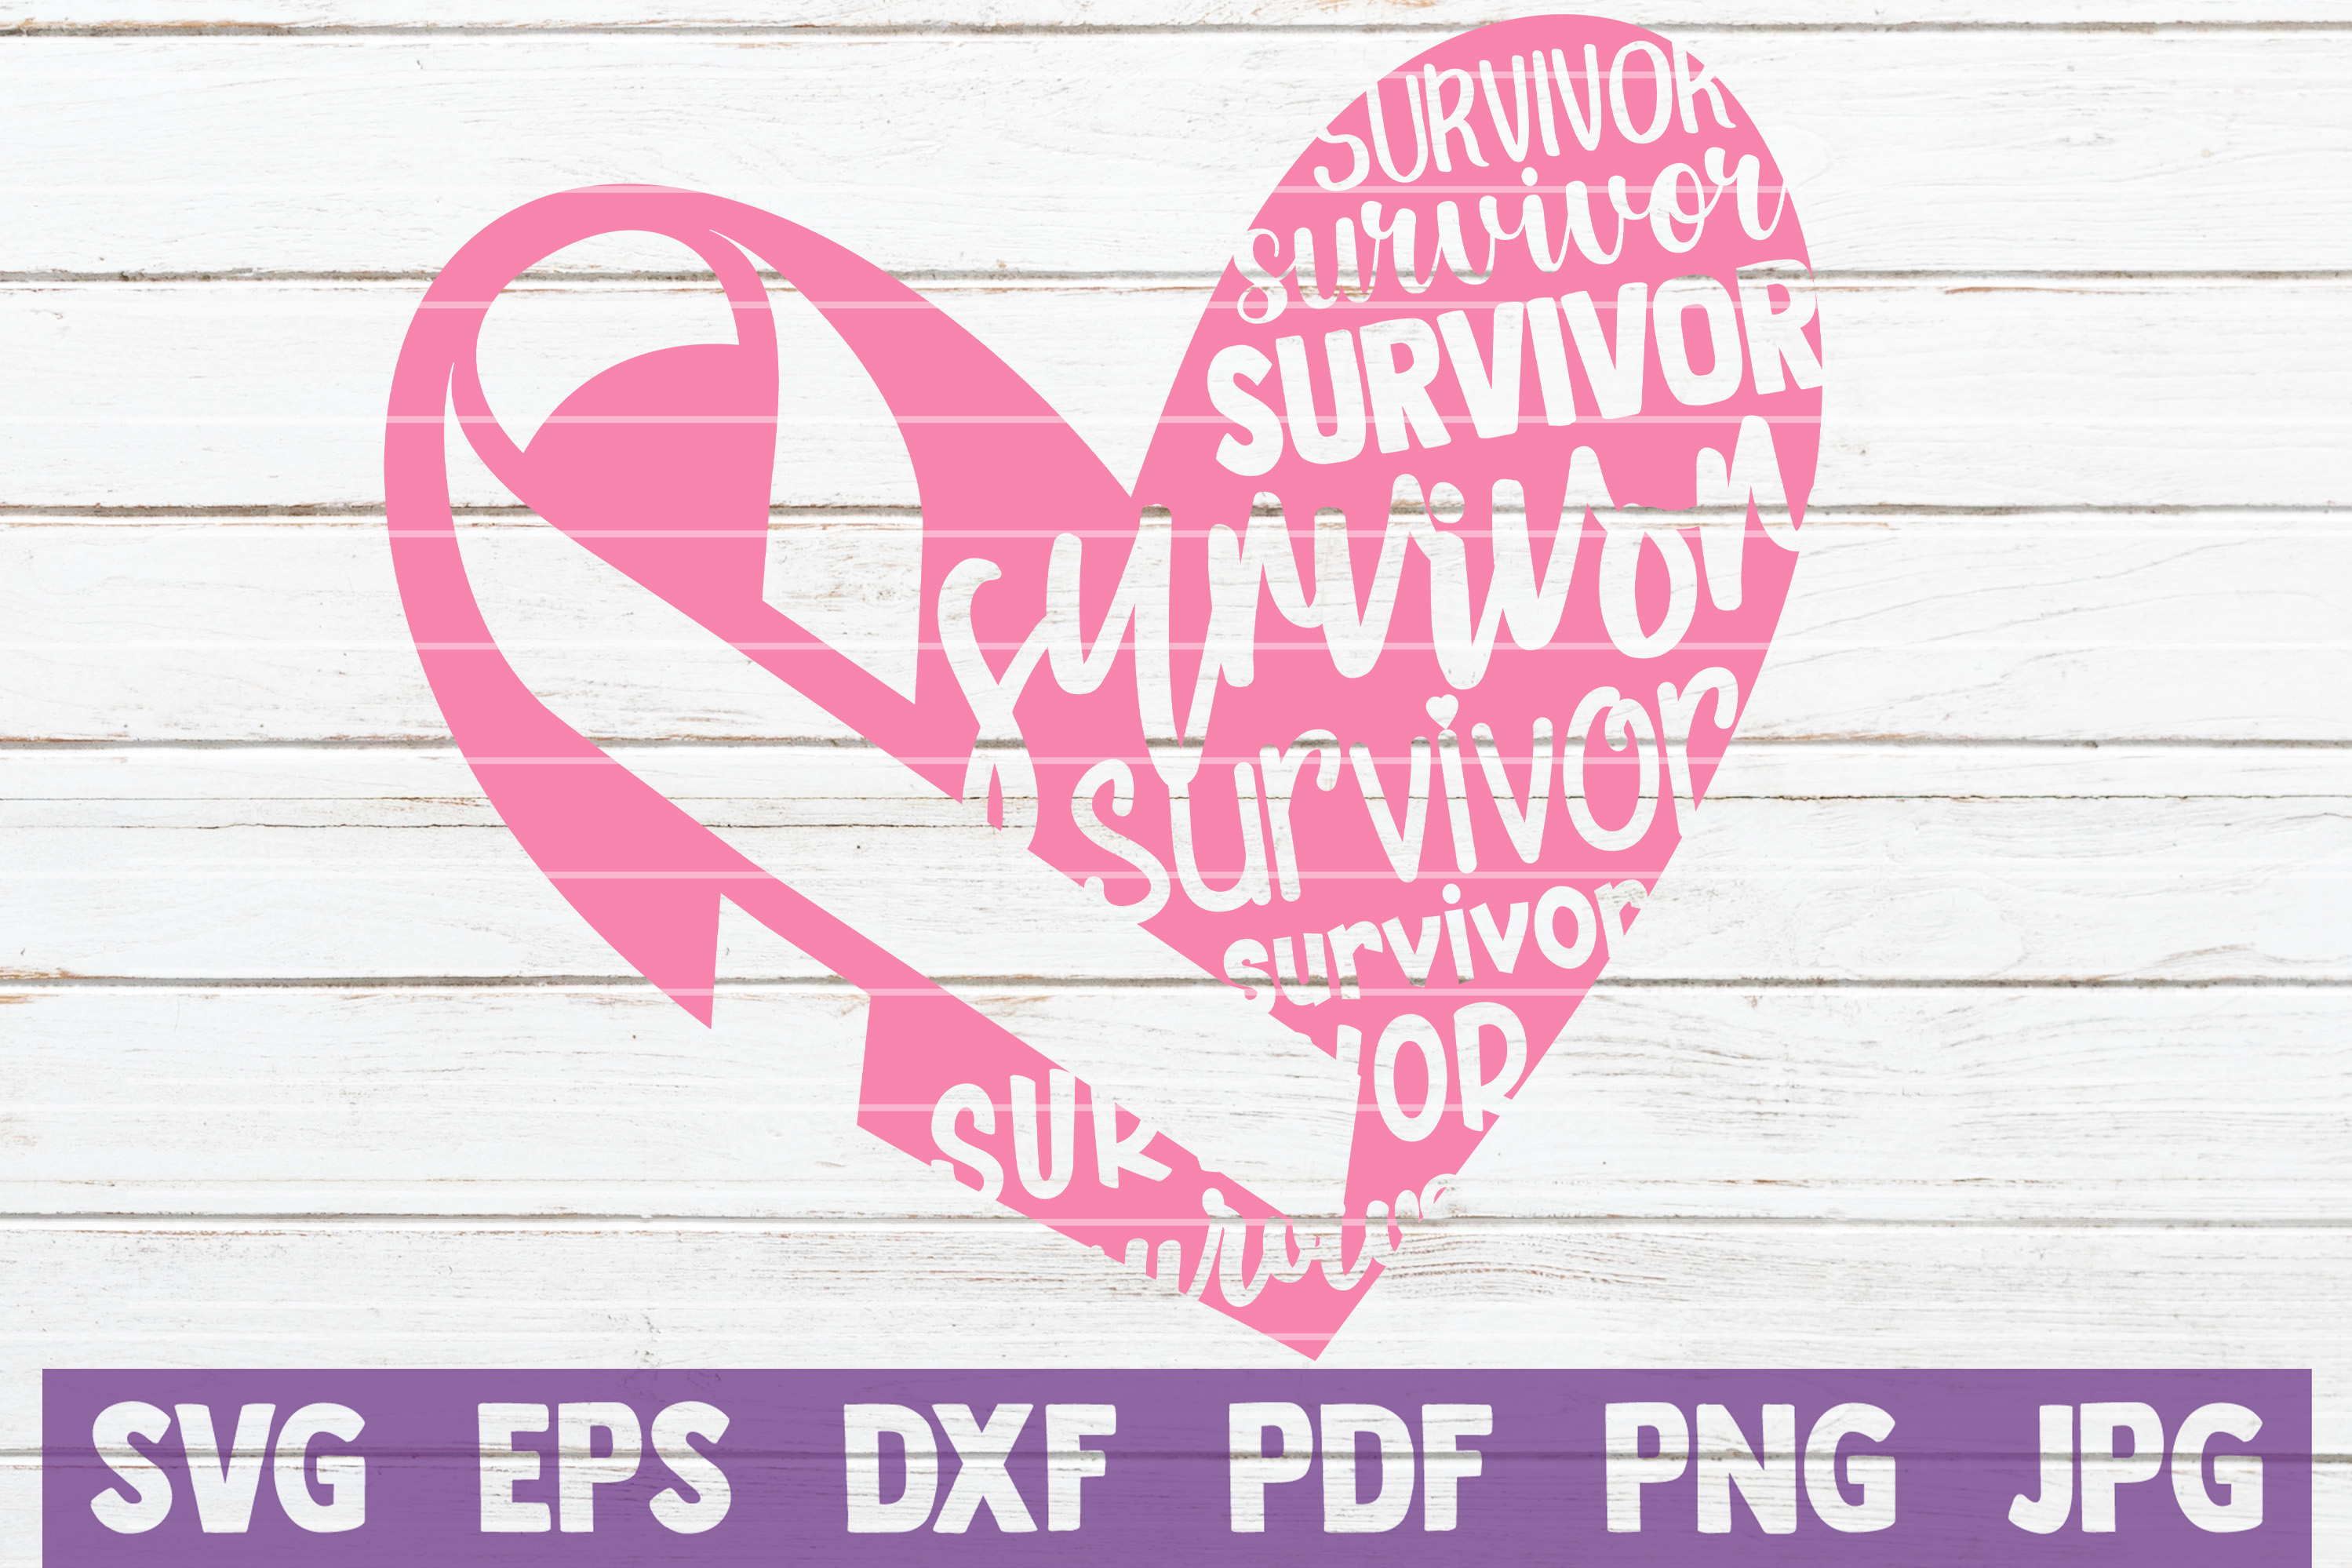 Download Free Cancer Survivor Heart Svg Cut File Graphic By Mintymarshmallows for Cricut Explore, Silhouette and other cutting machines.